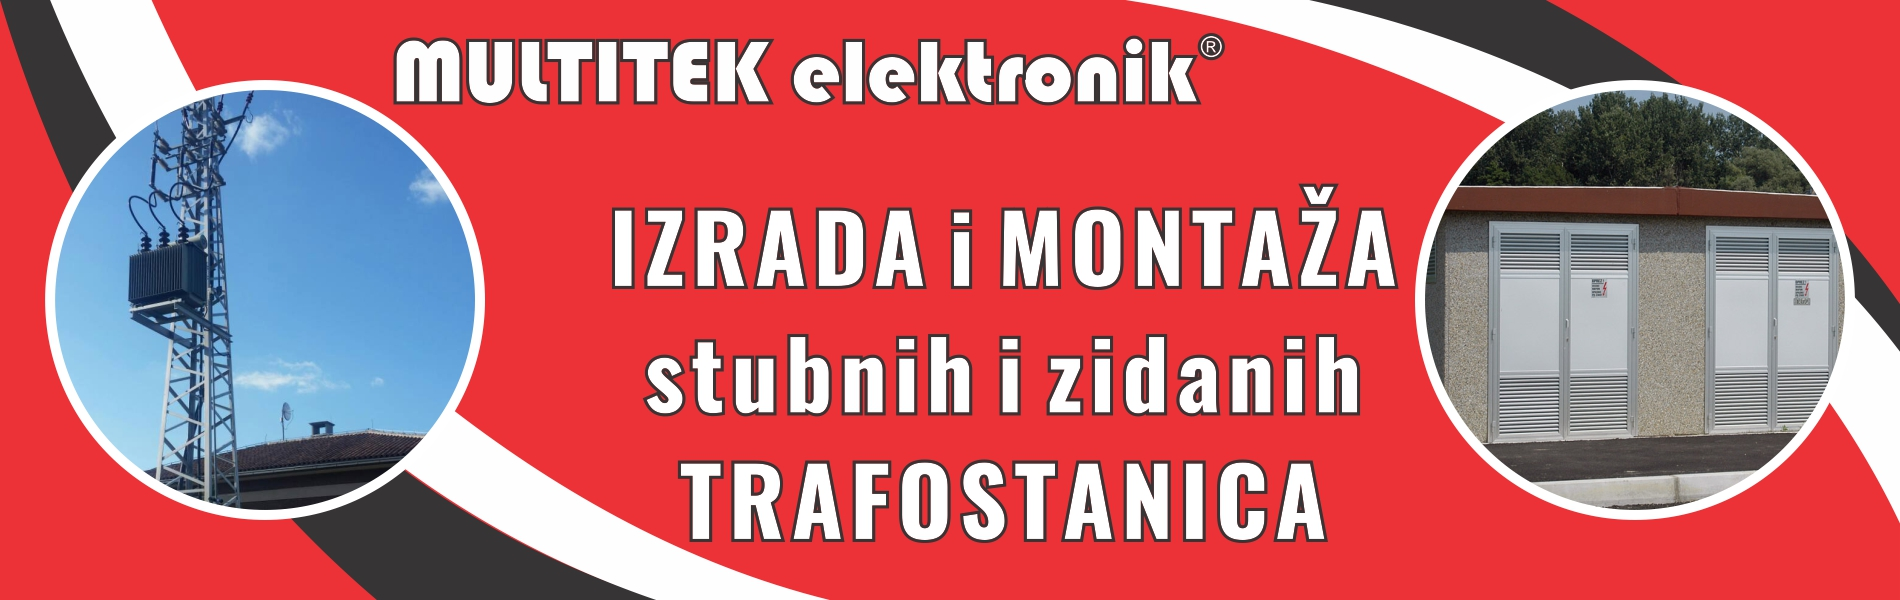 Multitek elektronik 1